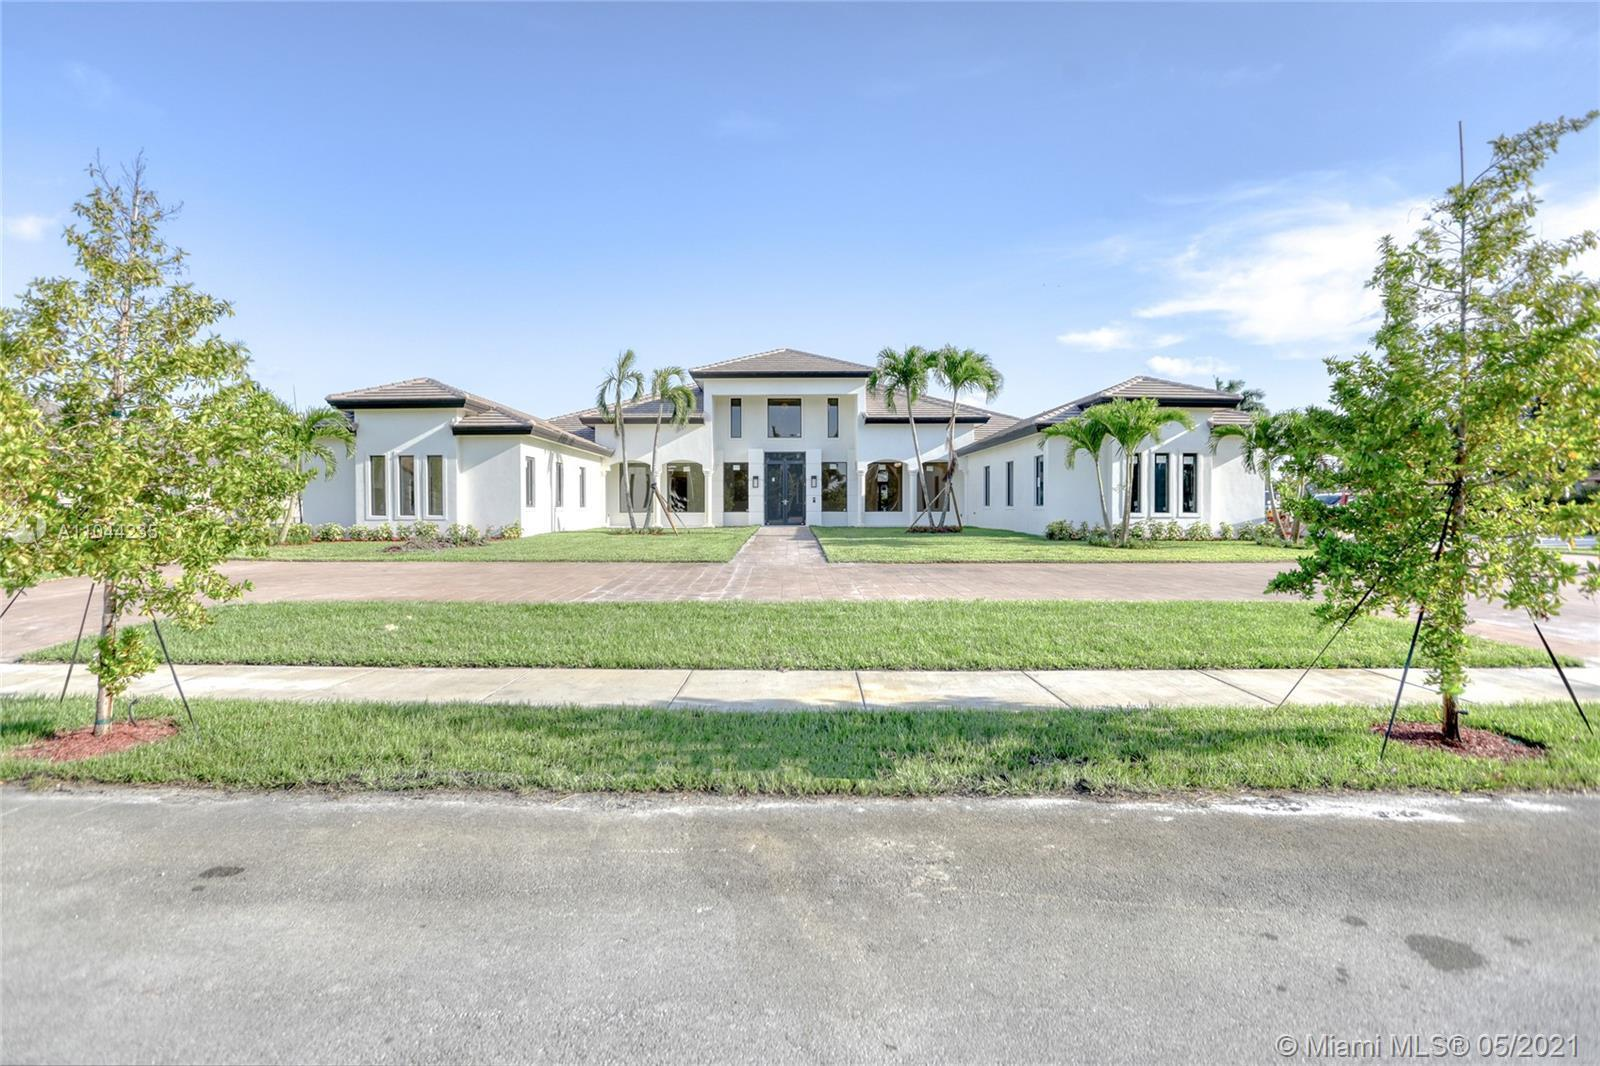 Custom home in a private gated community that features Golf and Country Club amenities. With 5 bedro